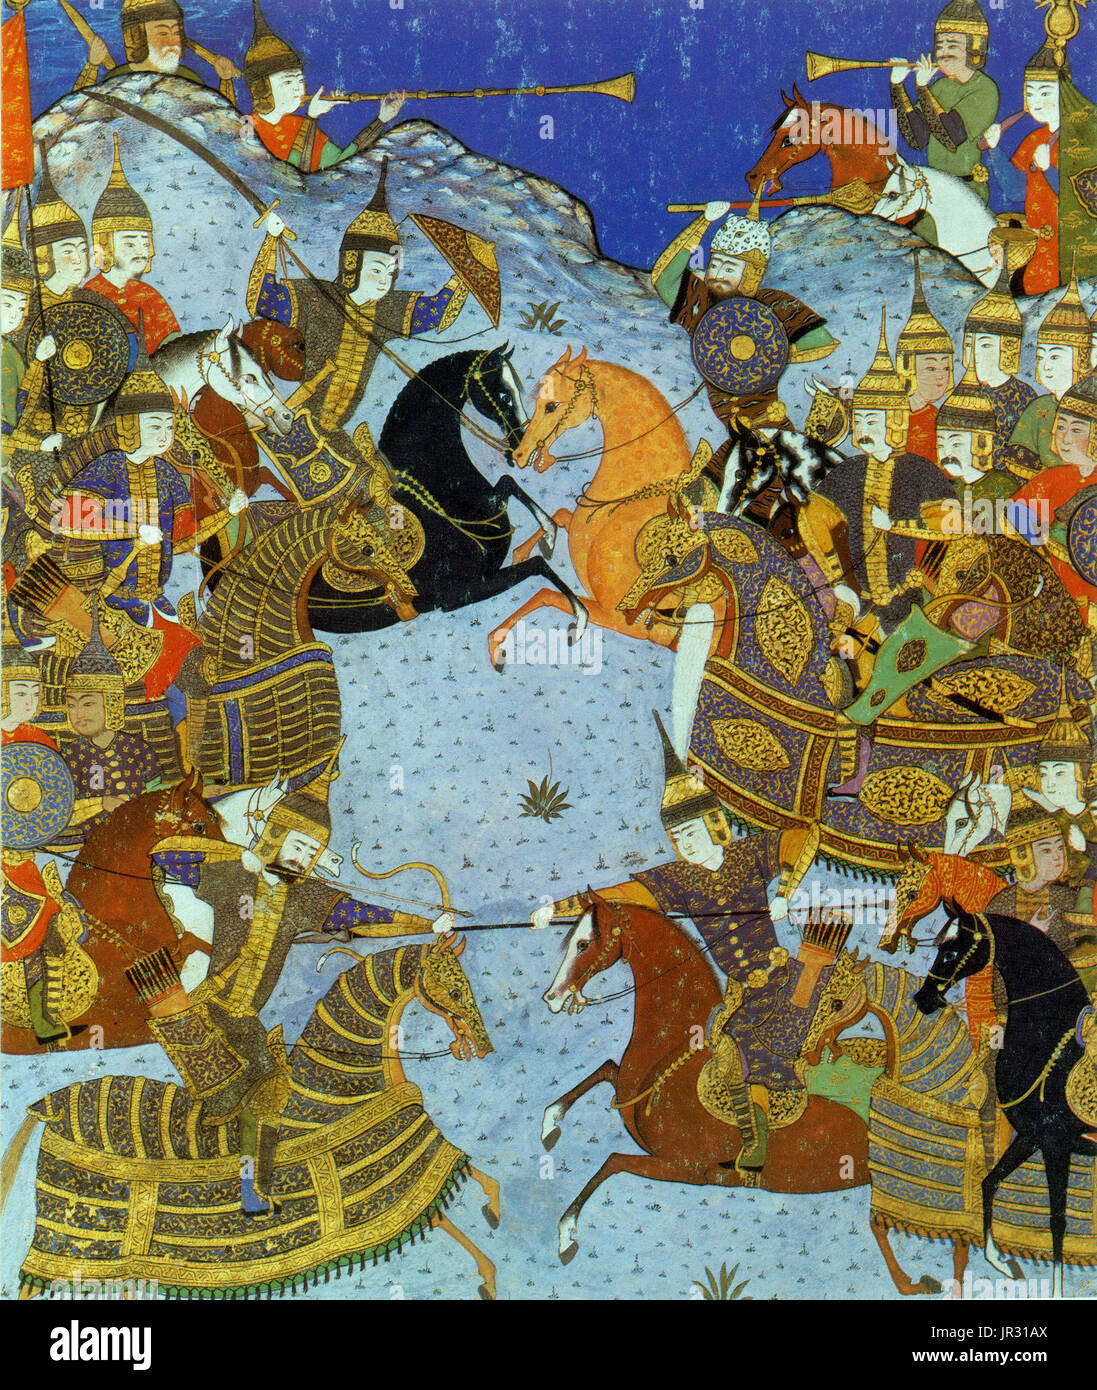 The Shahnameh, also transliterated as Shahnama (The Book of Kings), is a long epic poem written by the Persian poet Ferdowsi between 977 and 1010 AD and is the national epic of Greater Iran. Consisting of some 50,000 couplets, the Shahnameh is the world's longest epic poem written by a single poet. It tells mainly the mythical and to some extent the historical past of the Persian Empire from the creation of the world until the Islamic conquest of Persia in the 7th century. Modern Iran, Azerbaijan, Afghanistan and the greater region influenced by the Persian culture (such as Georgia, Armenia, T - Stock Image